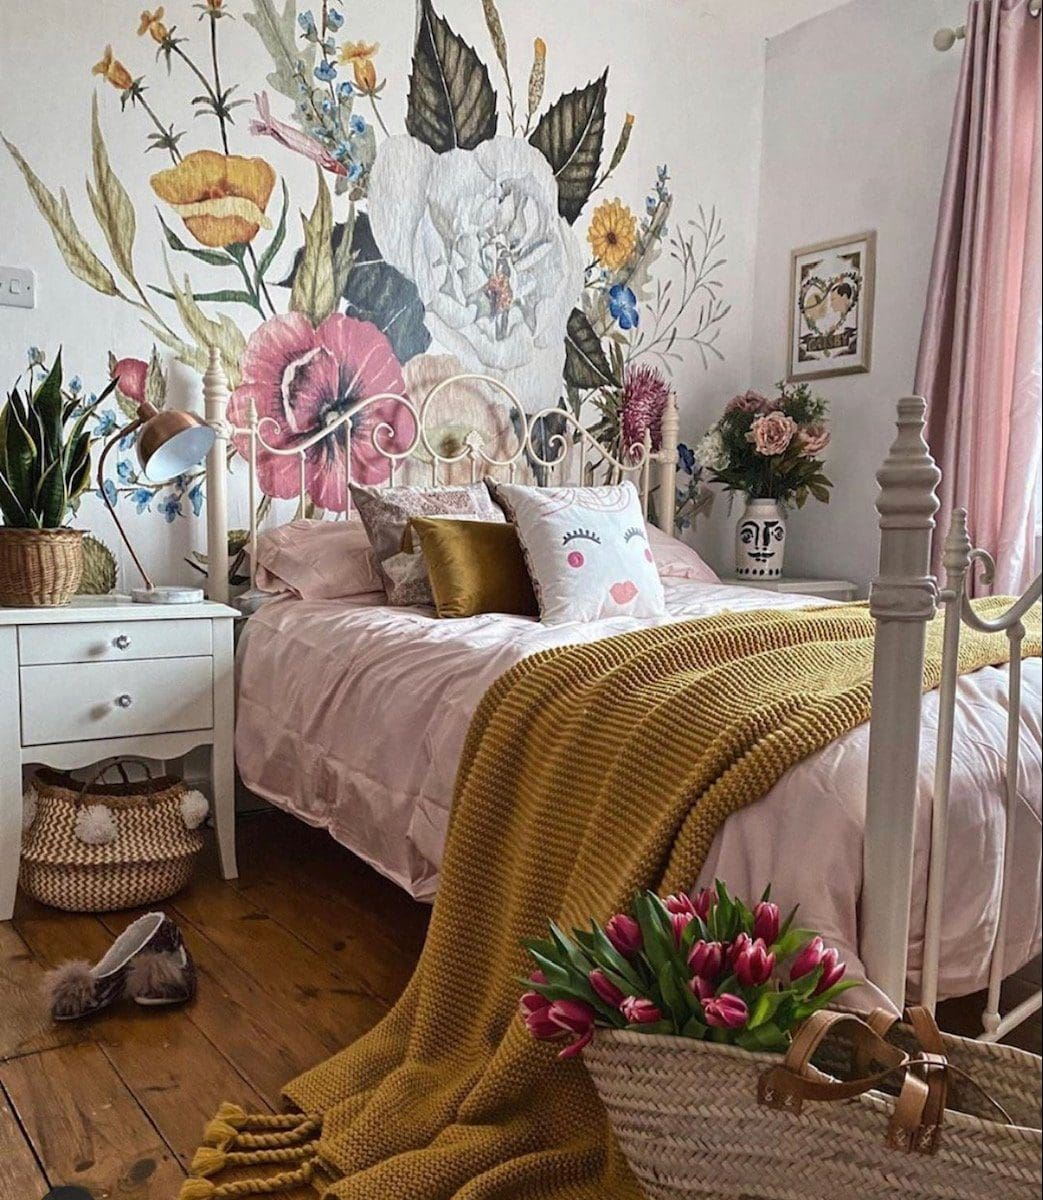 A Simple and Stress-Free Guide to Putting Up Wallpaper